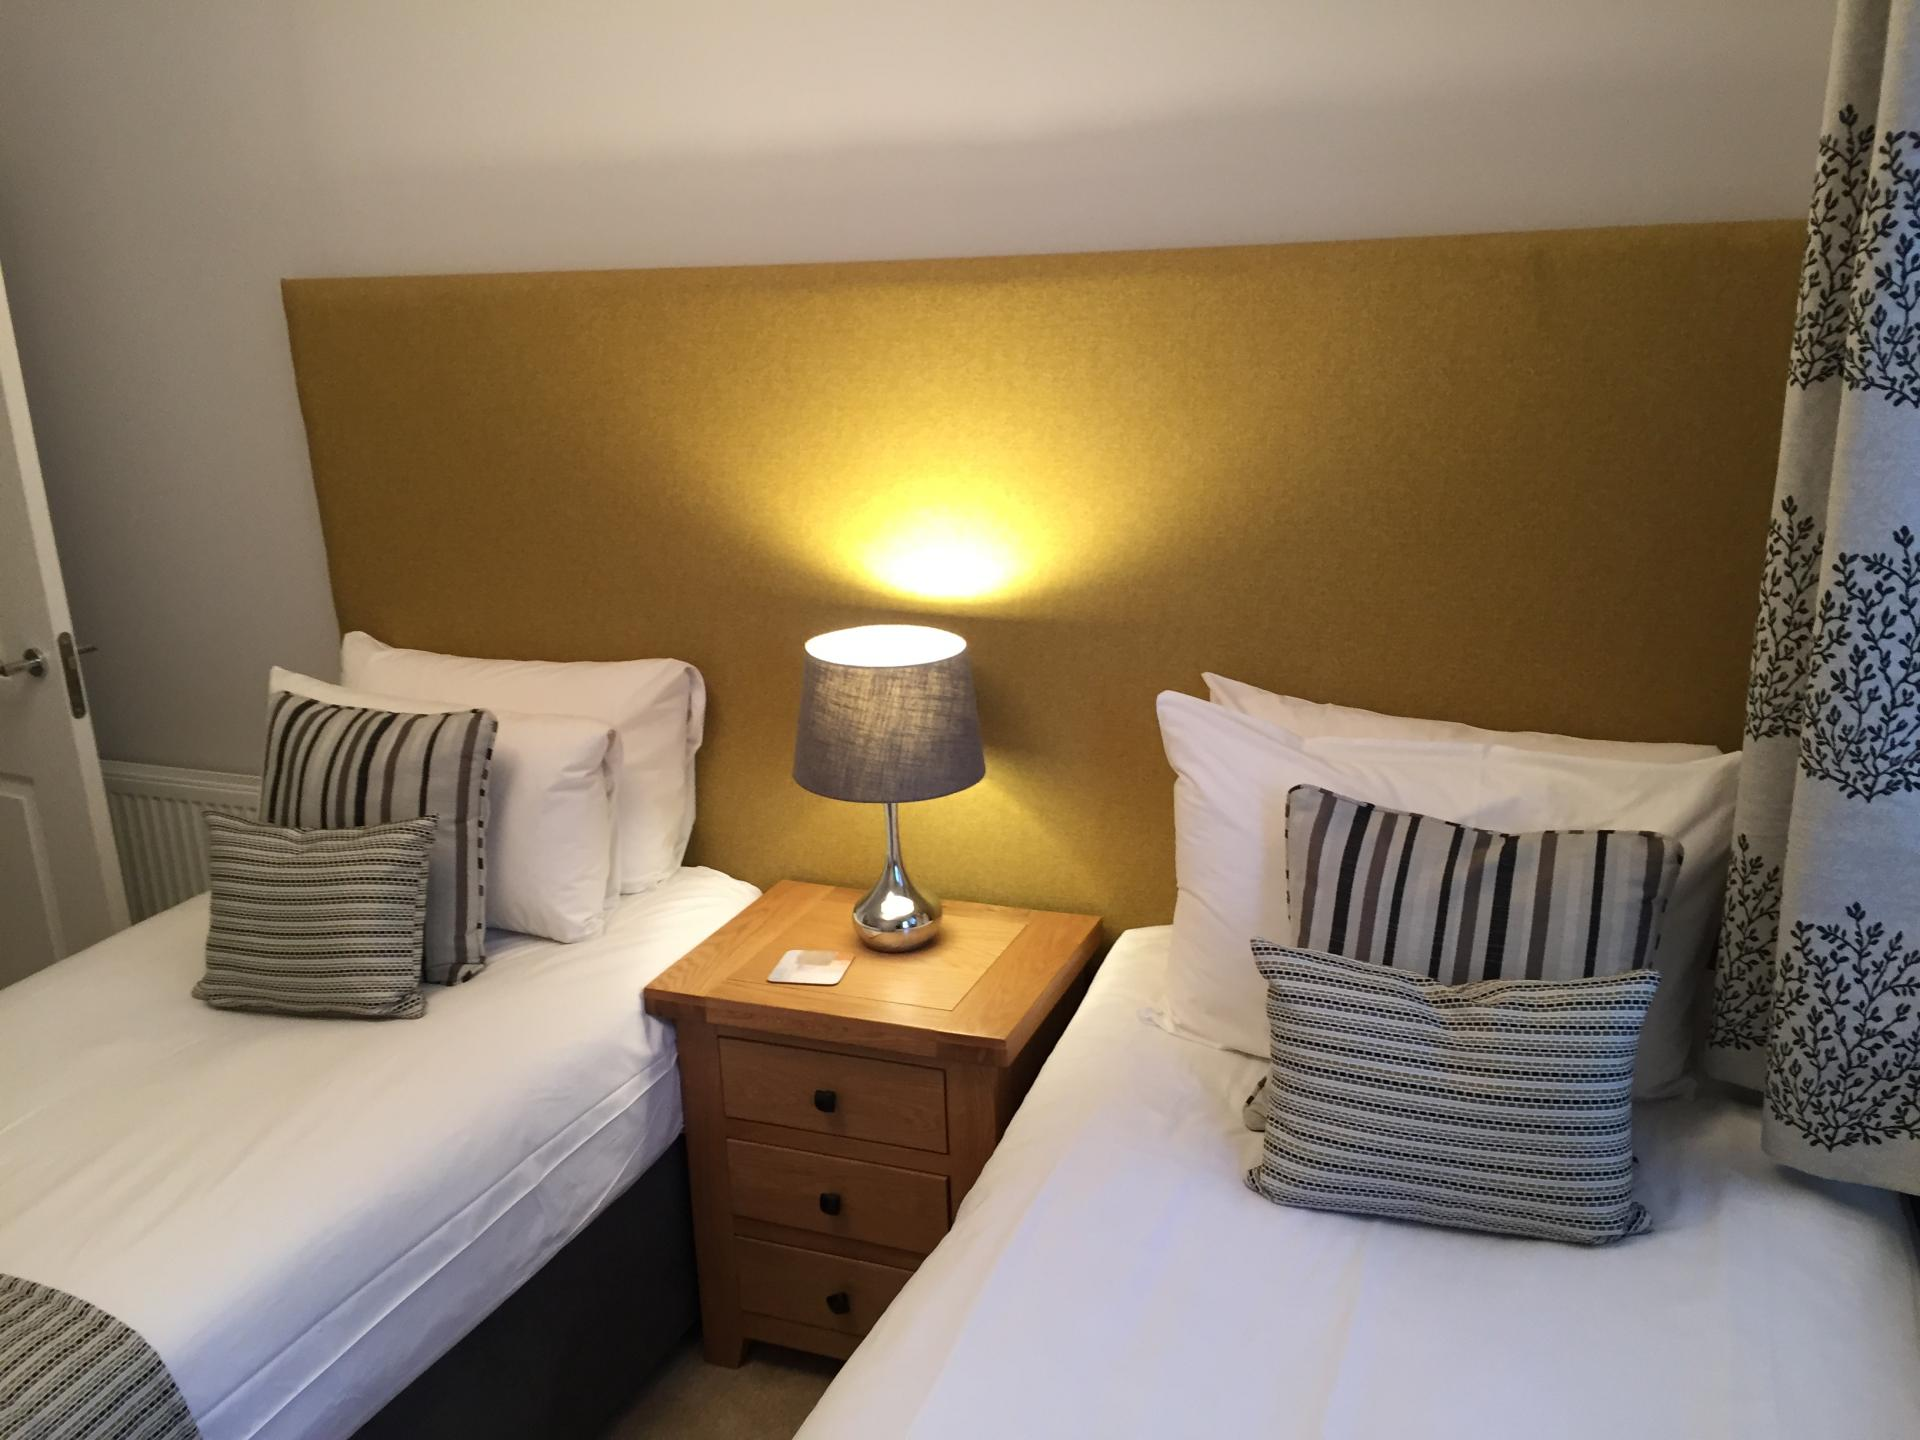 Beds at Hedgefield Apartments, Centre, Inverness - Citybase Apartments